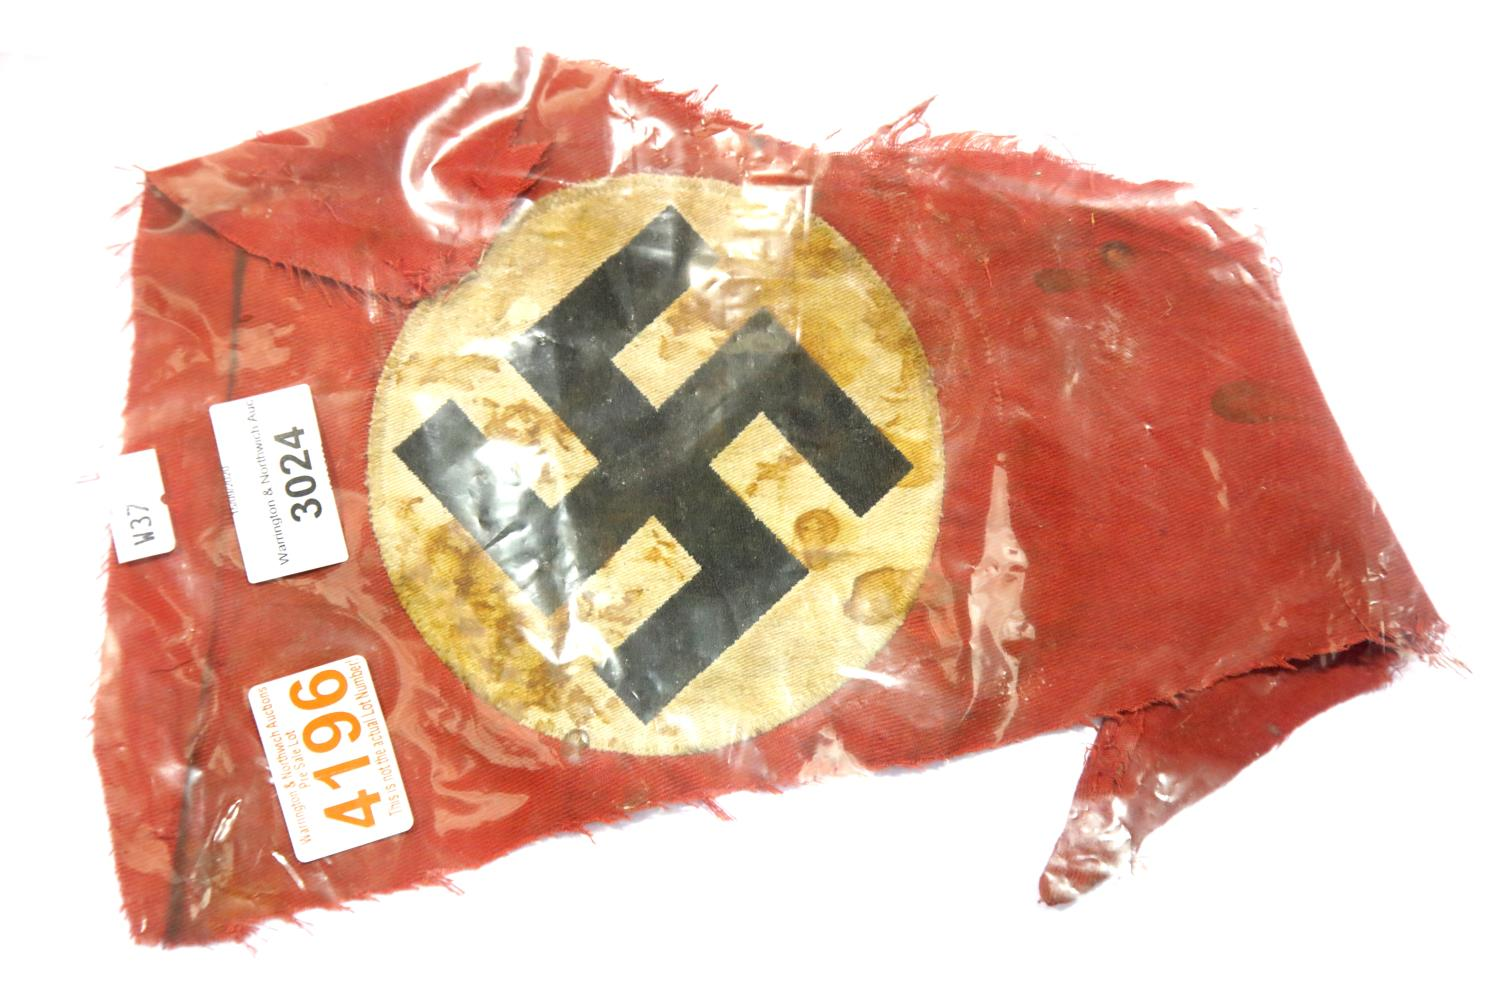 Lot 3024 - German WWII type Relic Fragment of Nazi Bunting. P&P Group 2 (£18+VAT for the first lot and £3+VAT